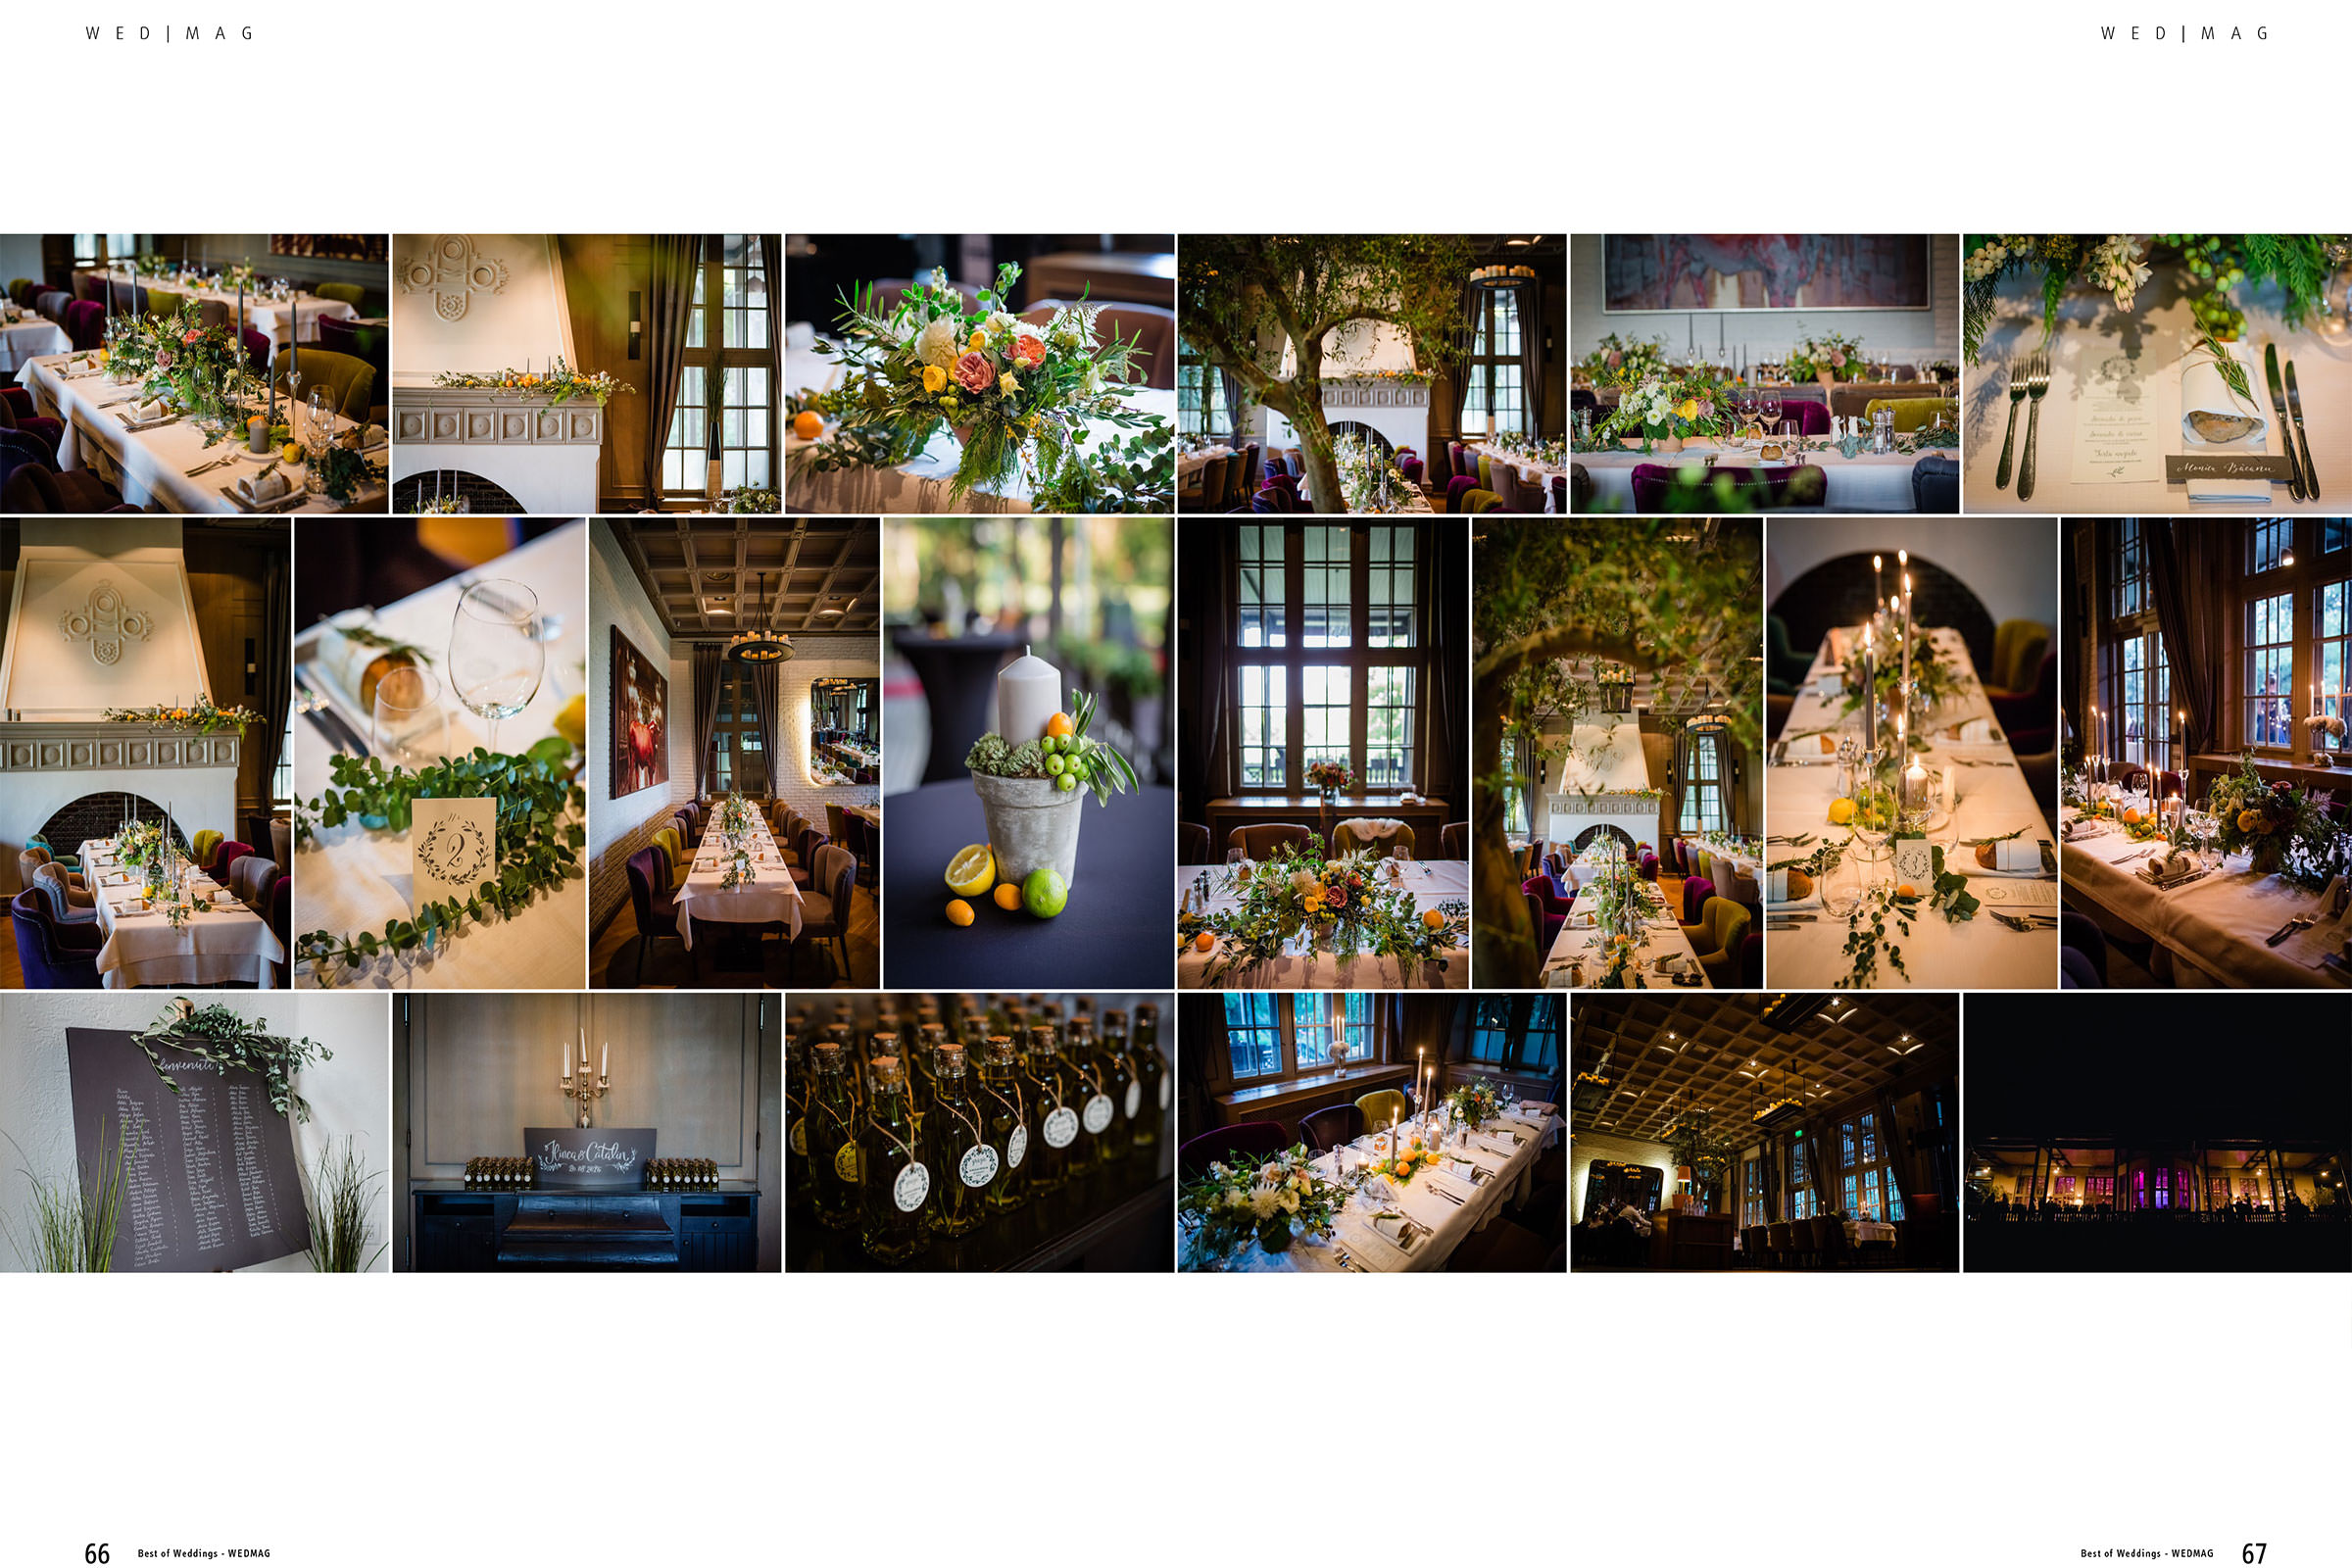 cromatica in best of weddings 2017 06